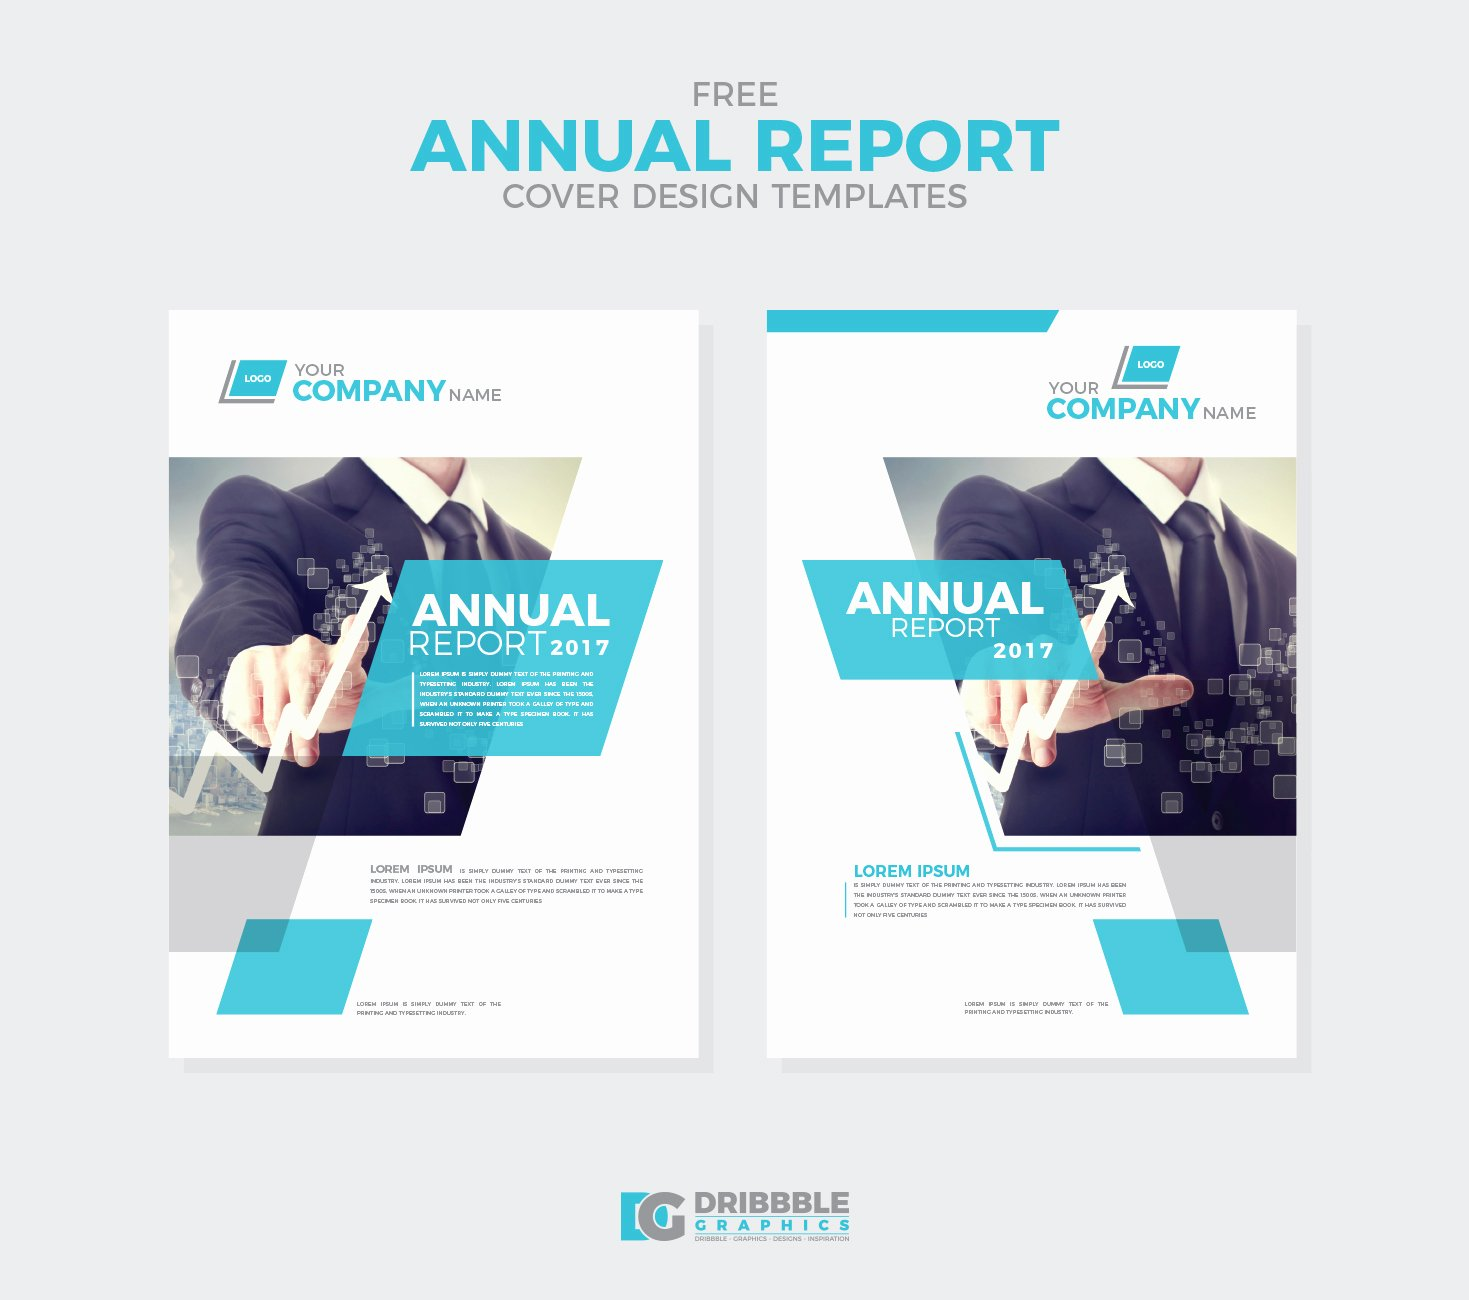 Annual Report Design Template Inspirational Free Annual Report Cover Design Templates